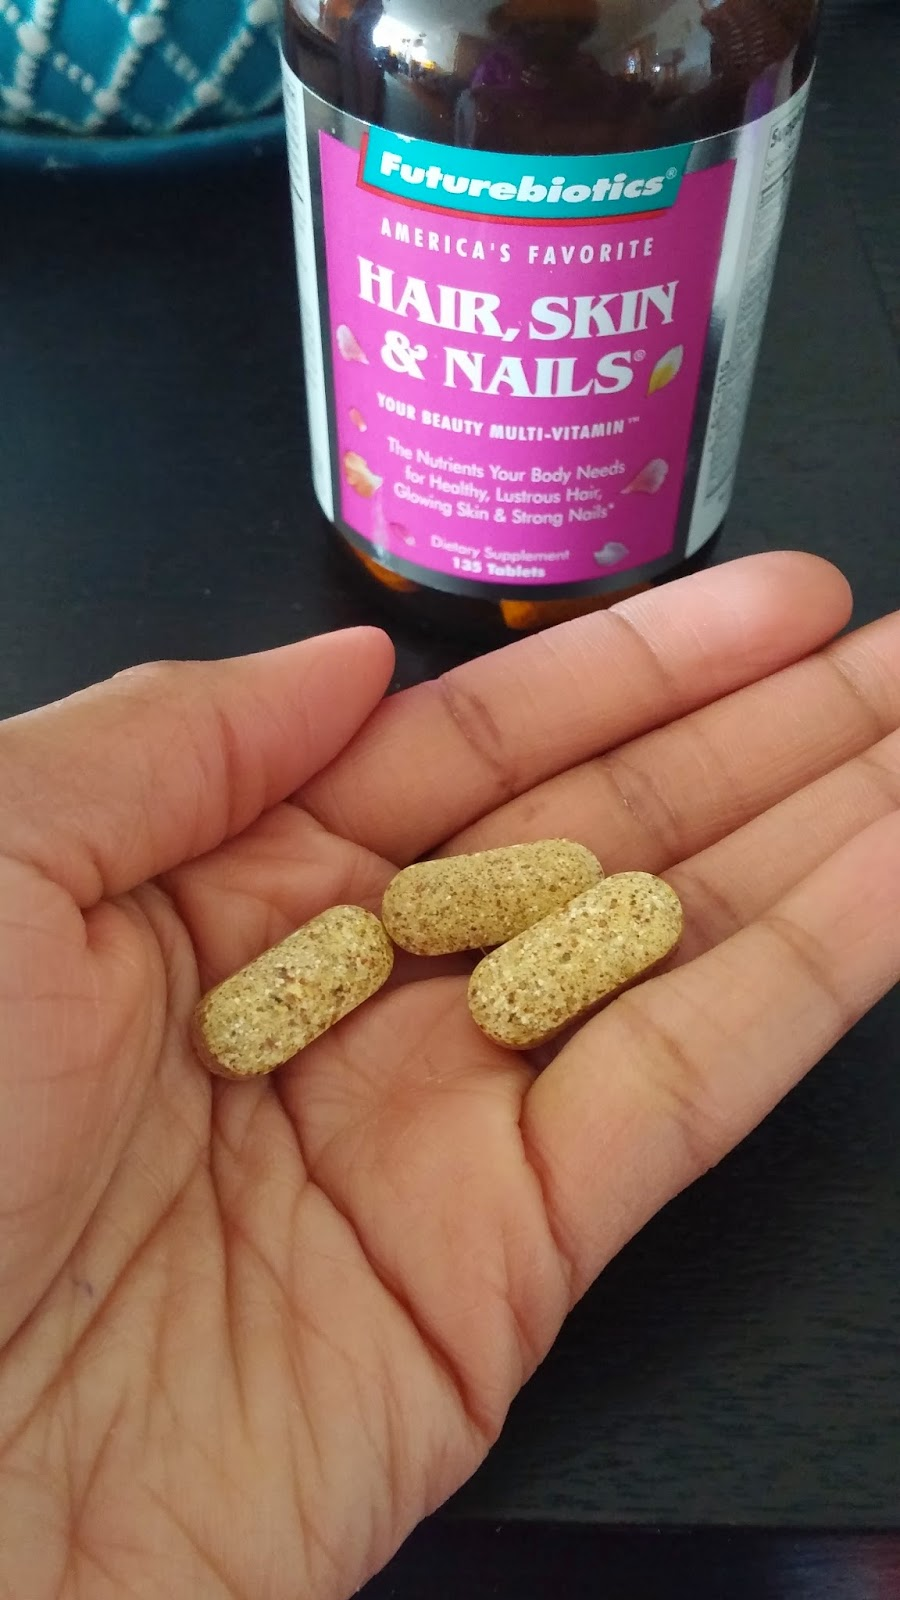 Futurebiotics Hair, Skin and Nails Review | Naturalle Drea